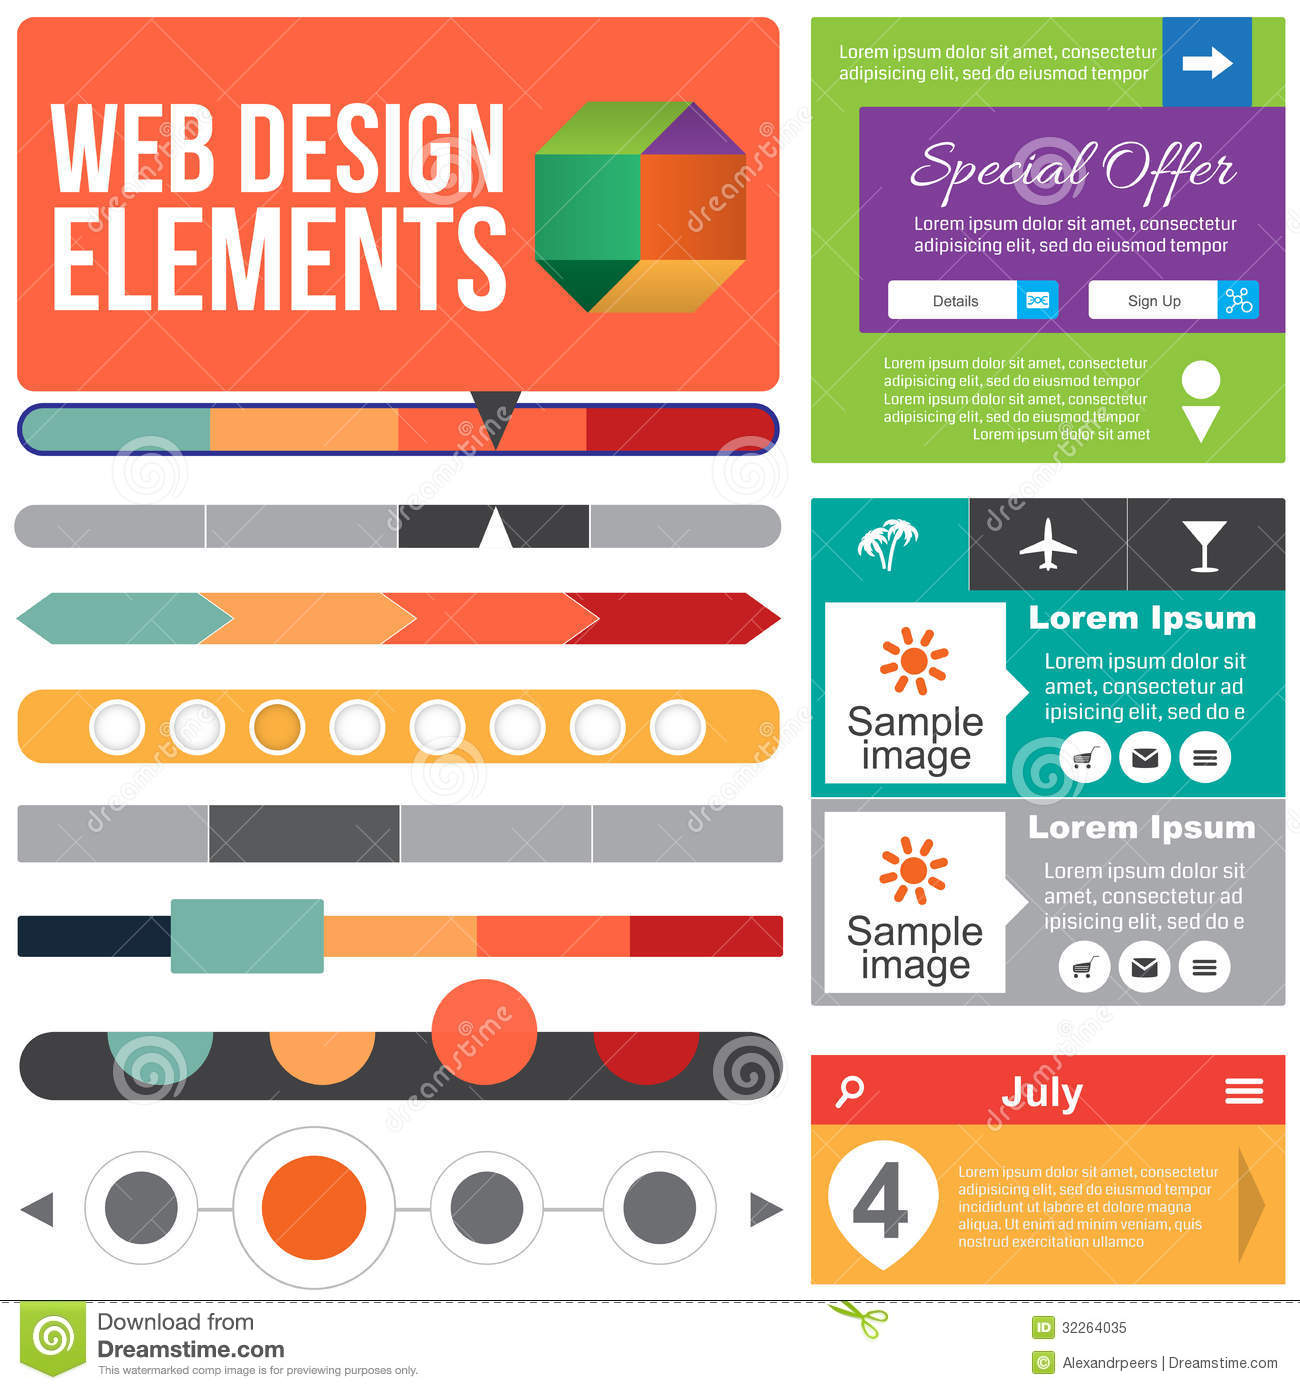 14 Web Design Elements Images